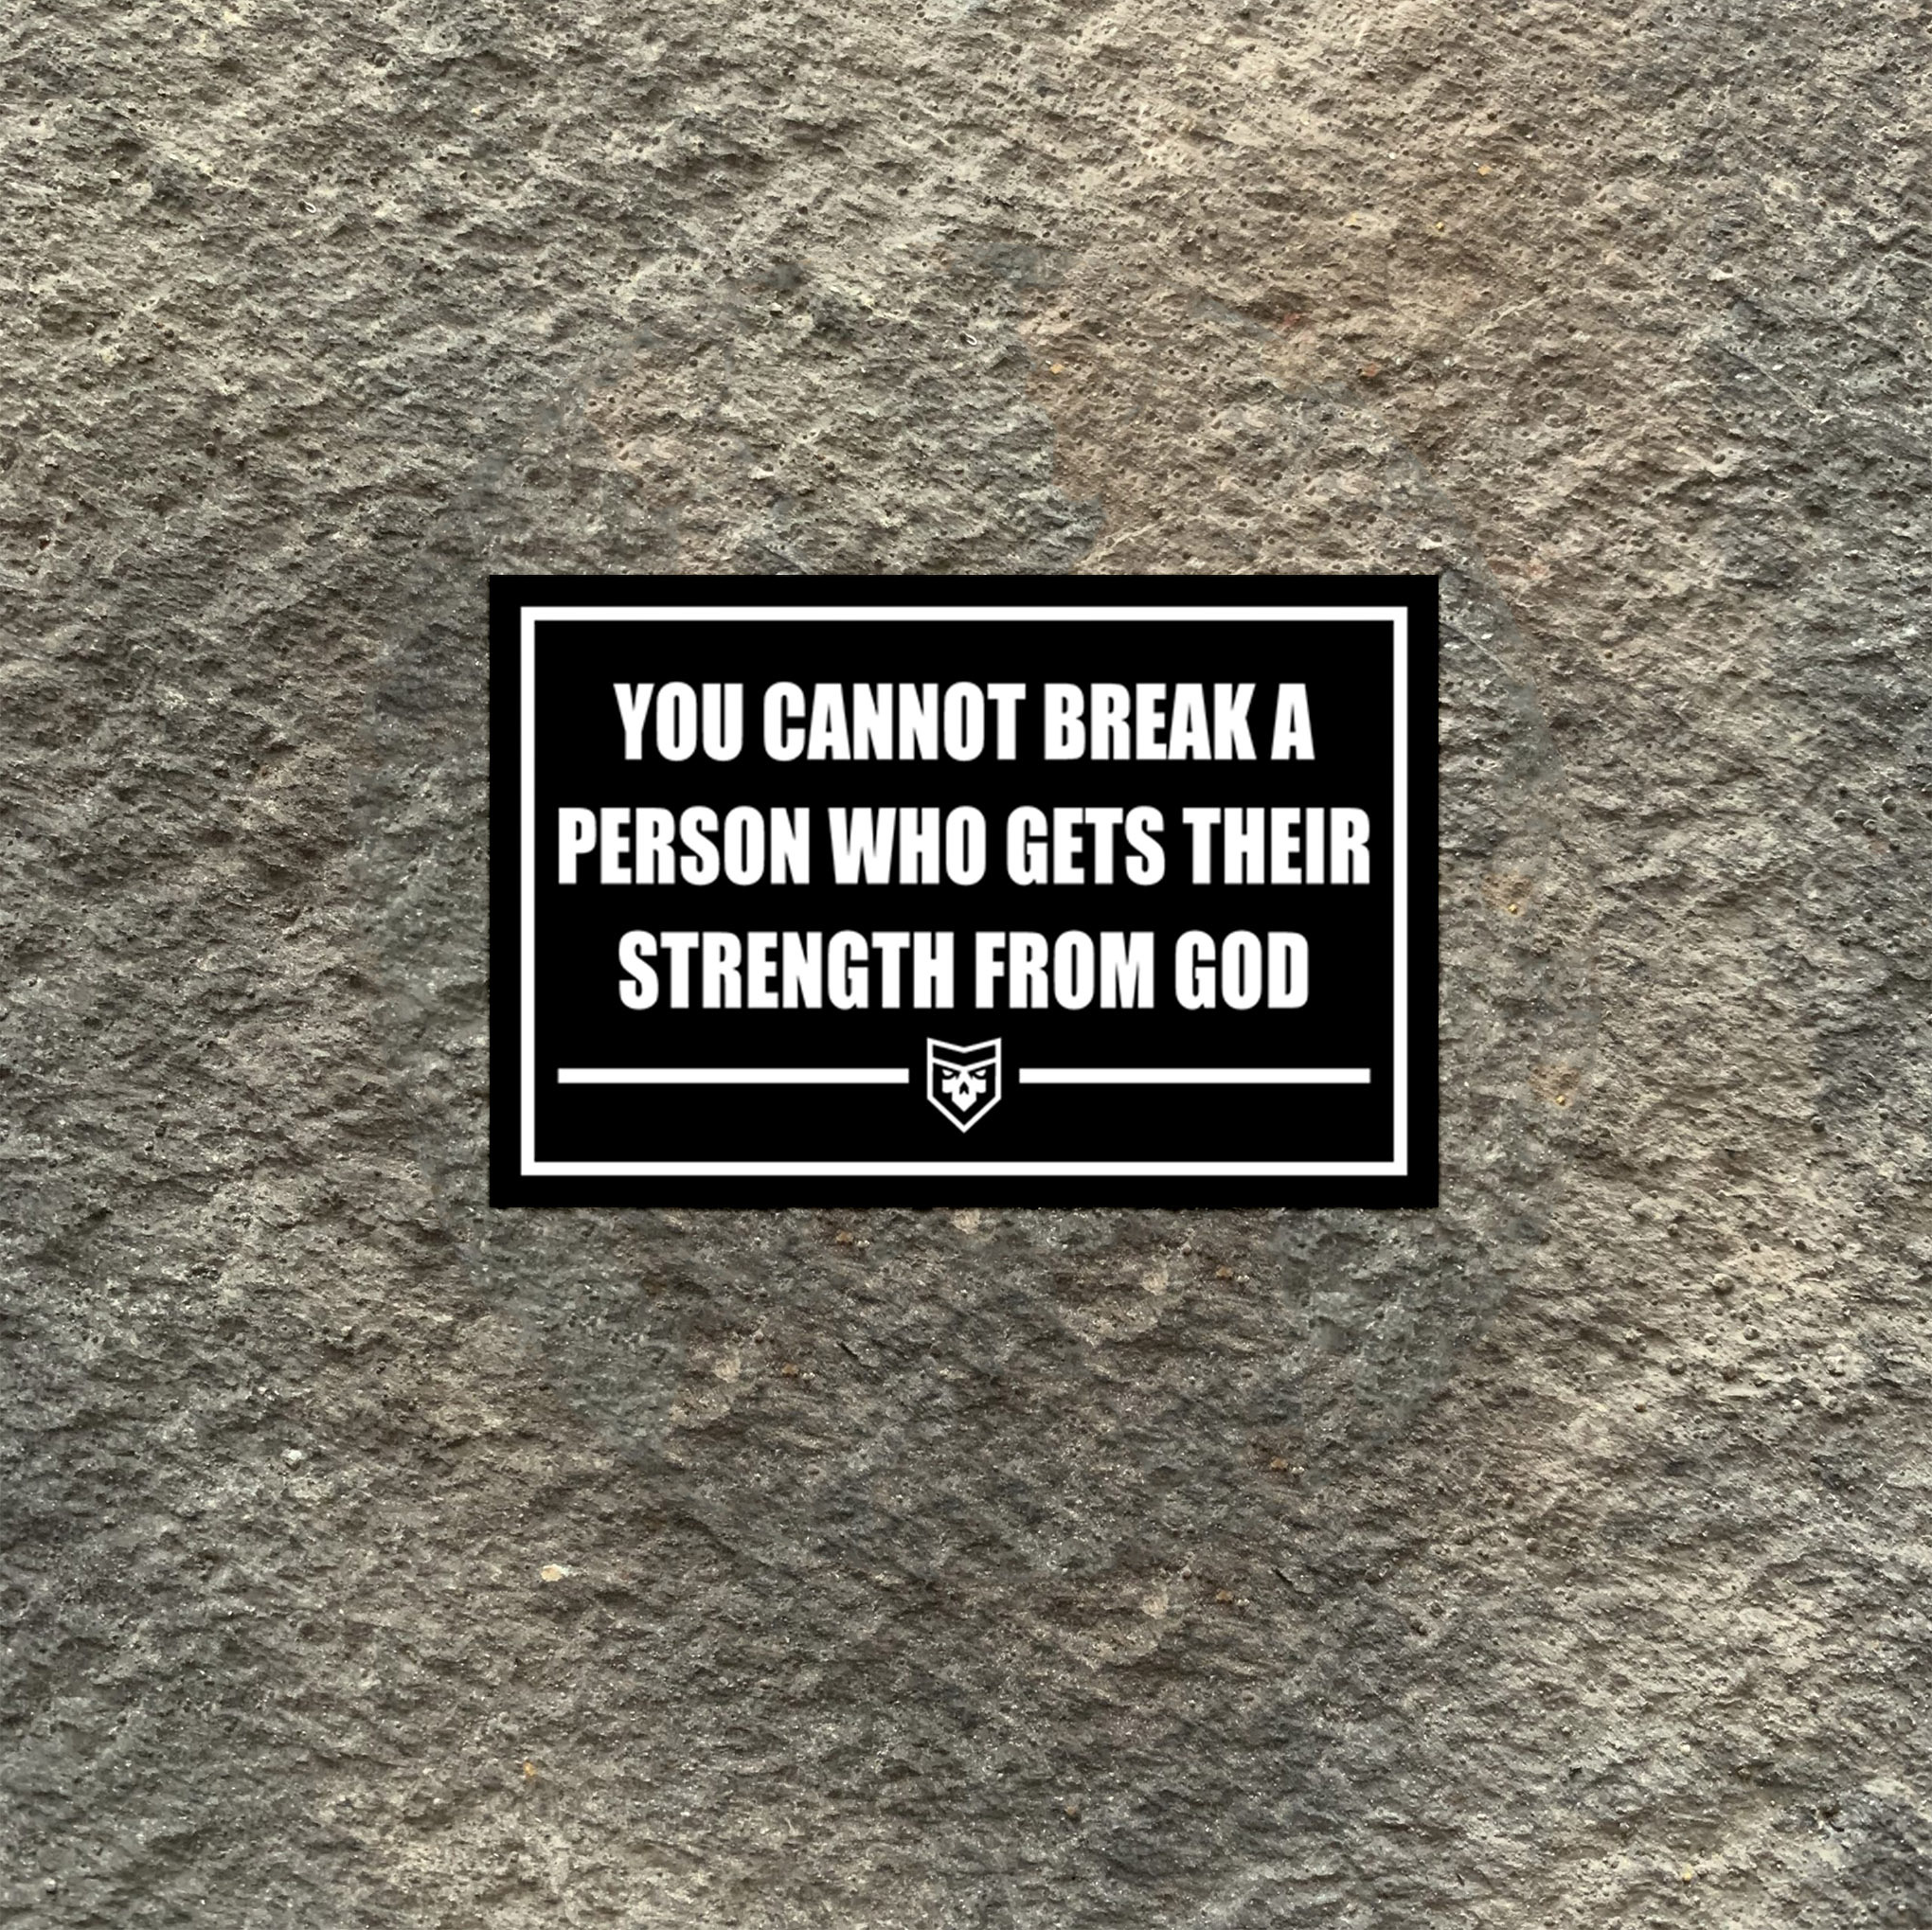 cannot-break-person-who-gets-strength-from-god